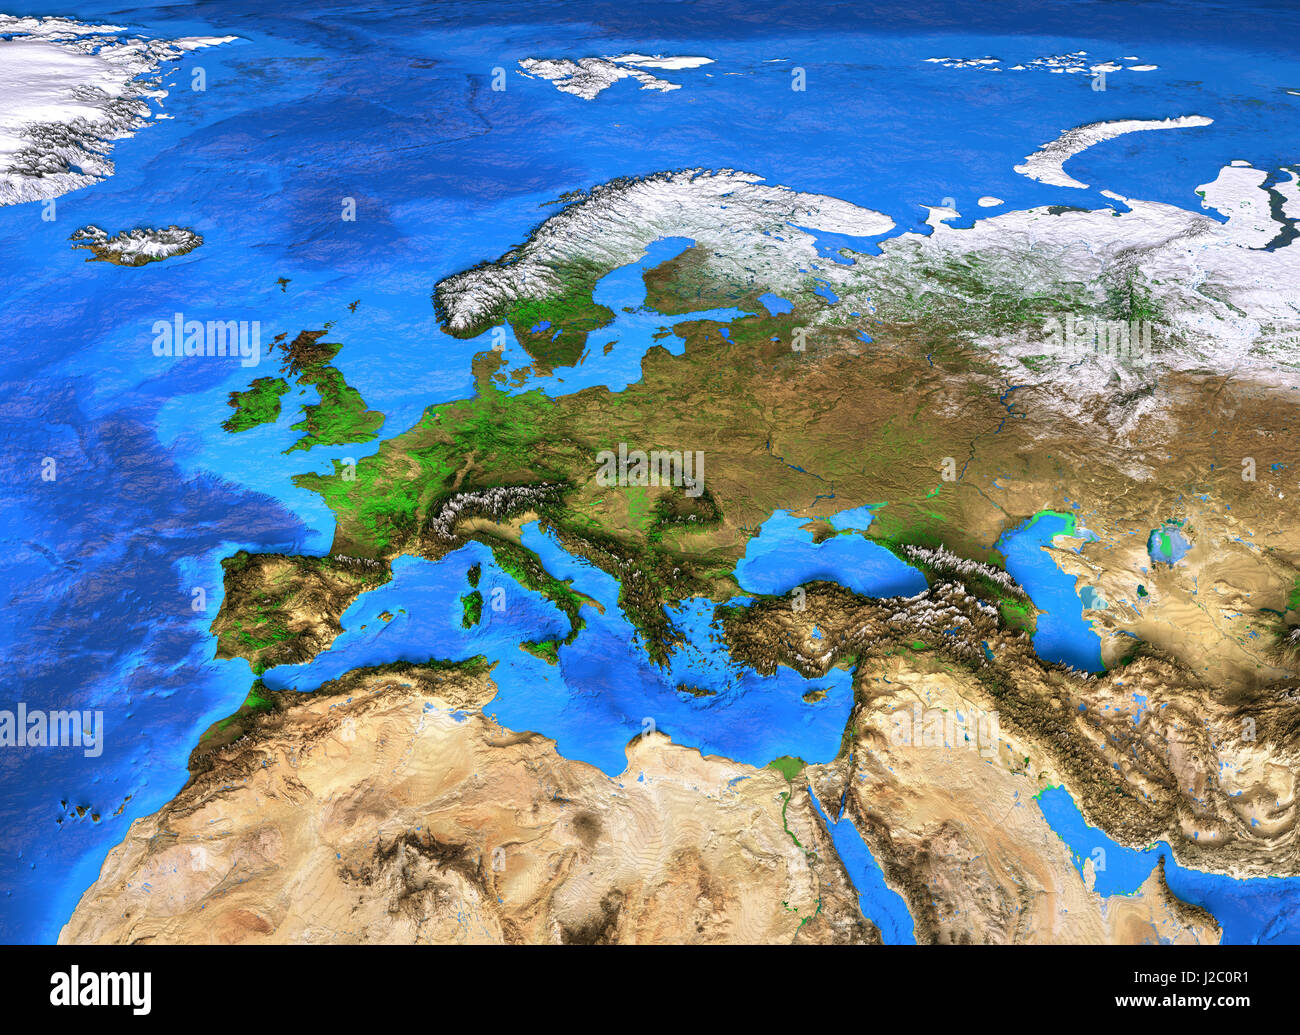 Europe Map Detailed Satellite View Of The Earth And Its Landforms - Earth map satellite